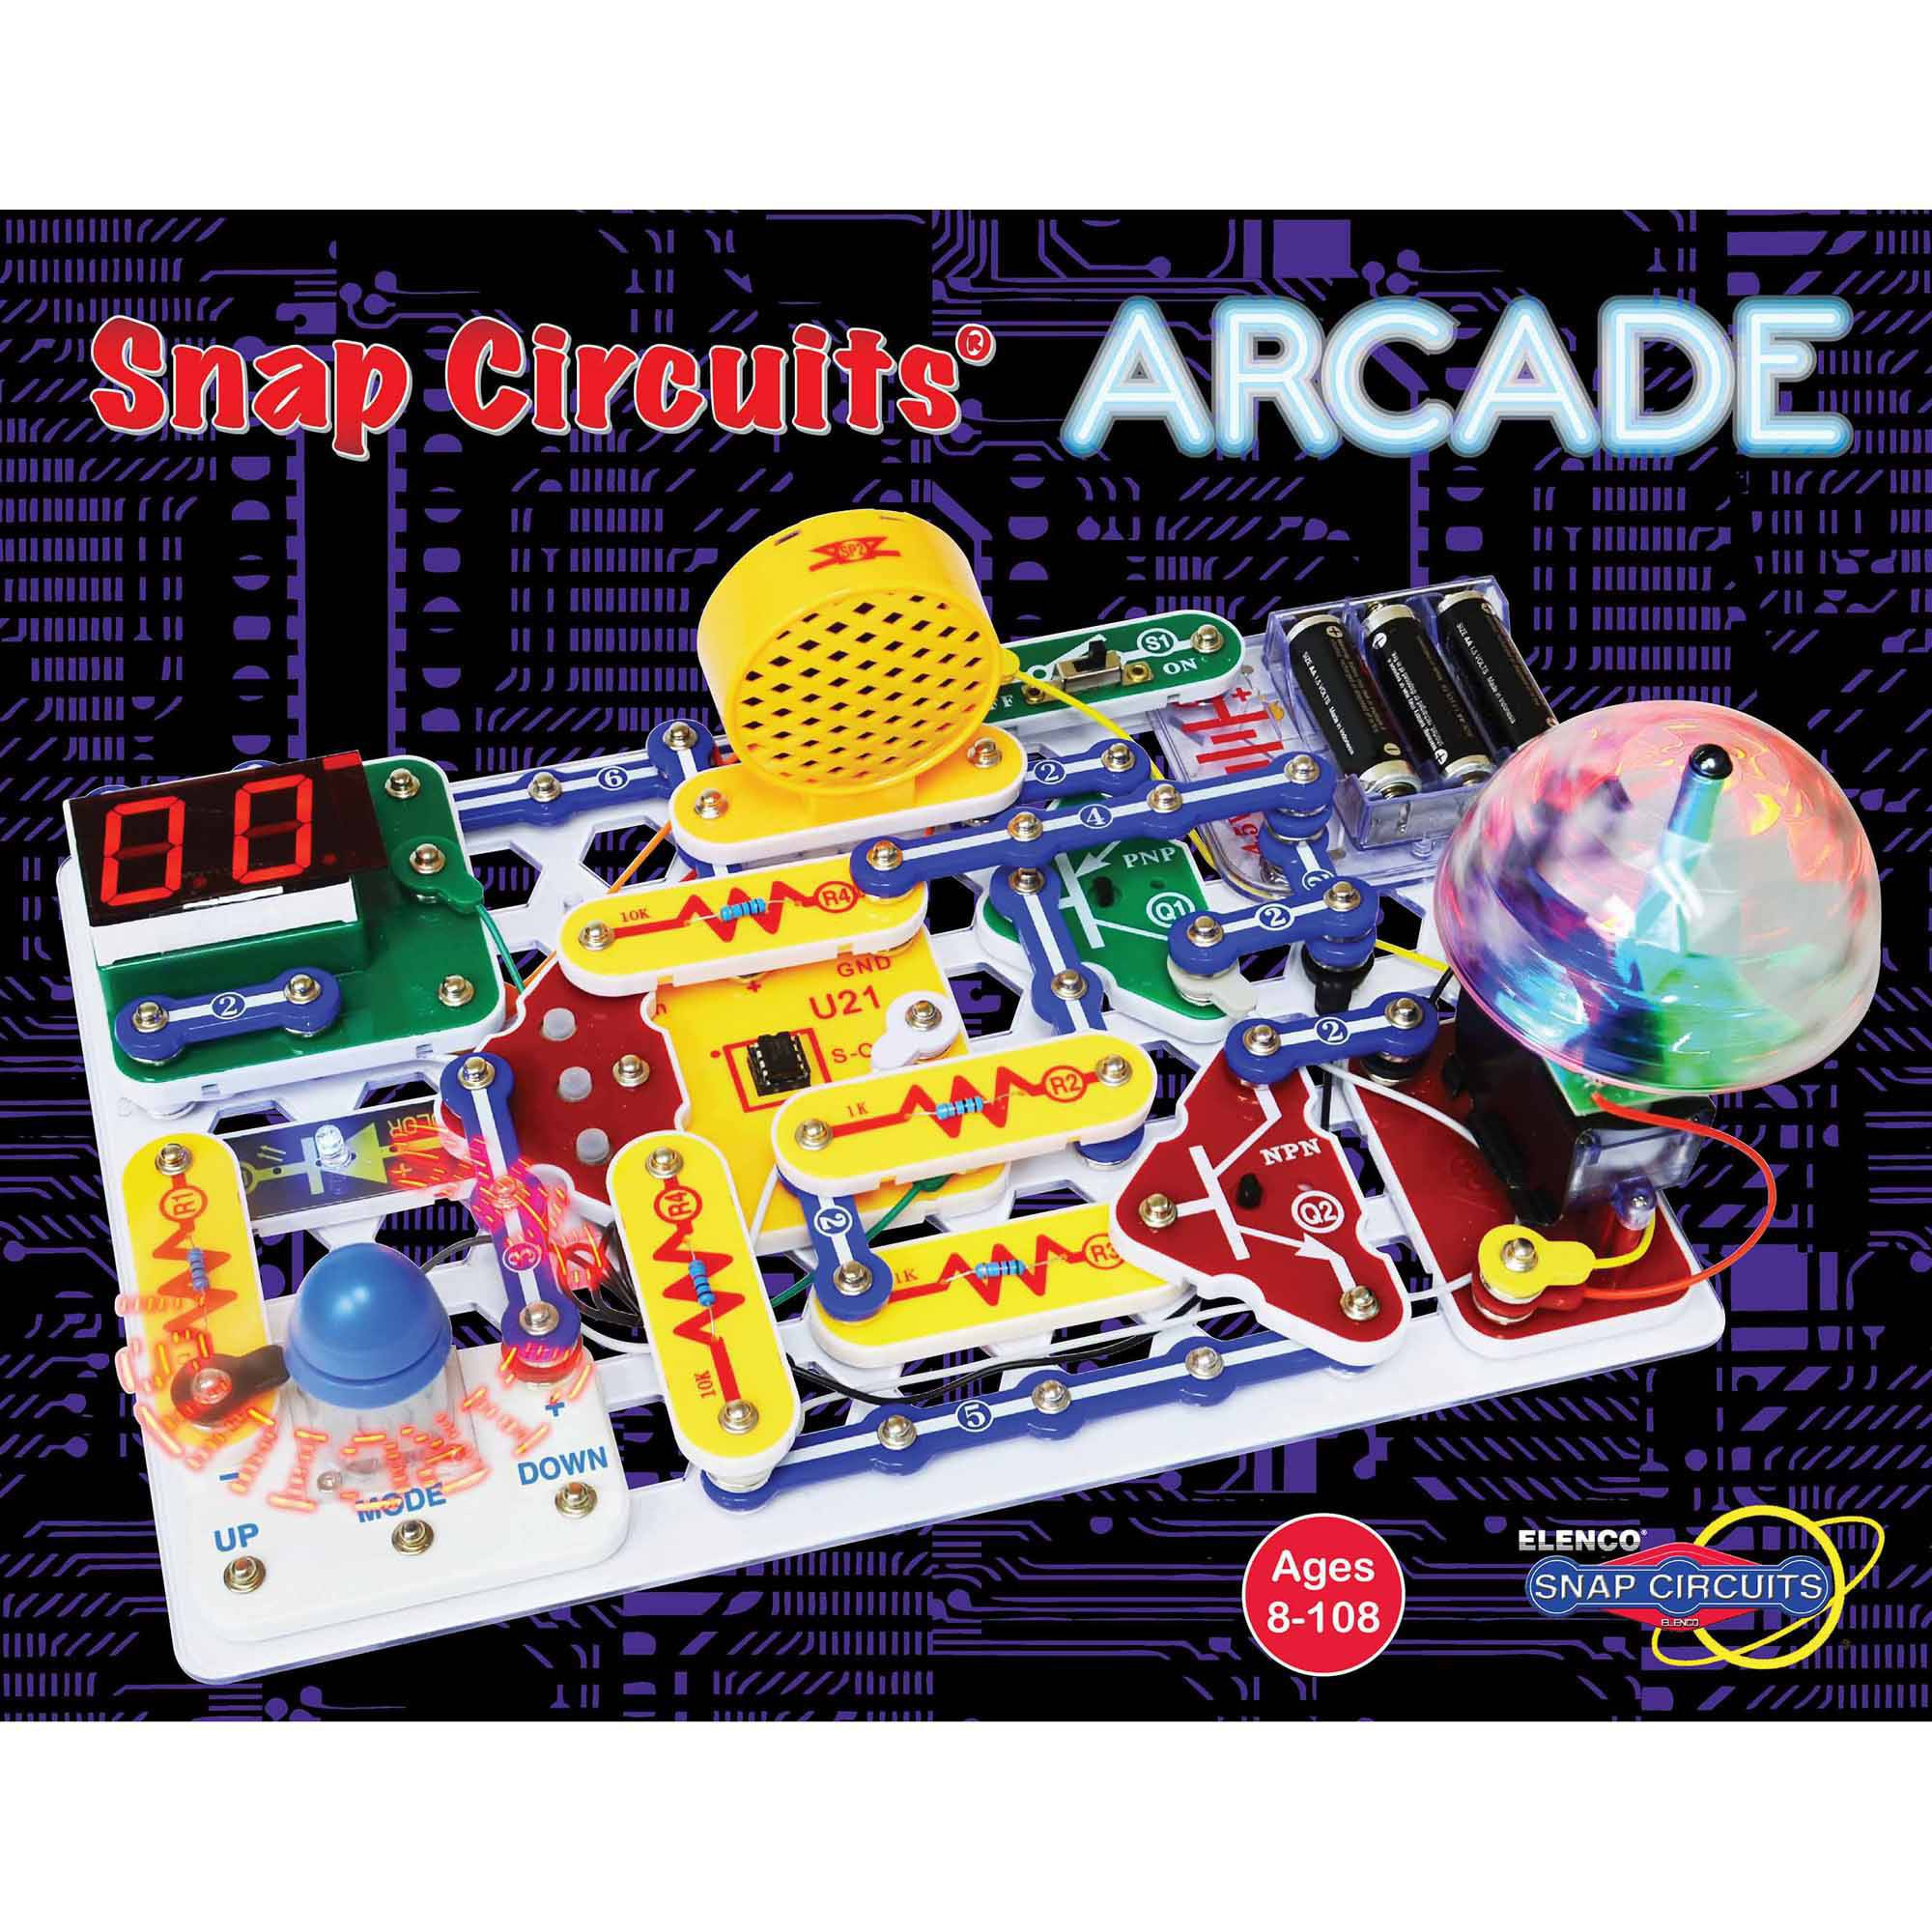 Snap Circuits Arcade Electronics Discovery Kit